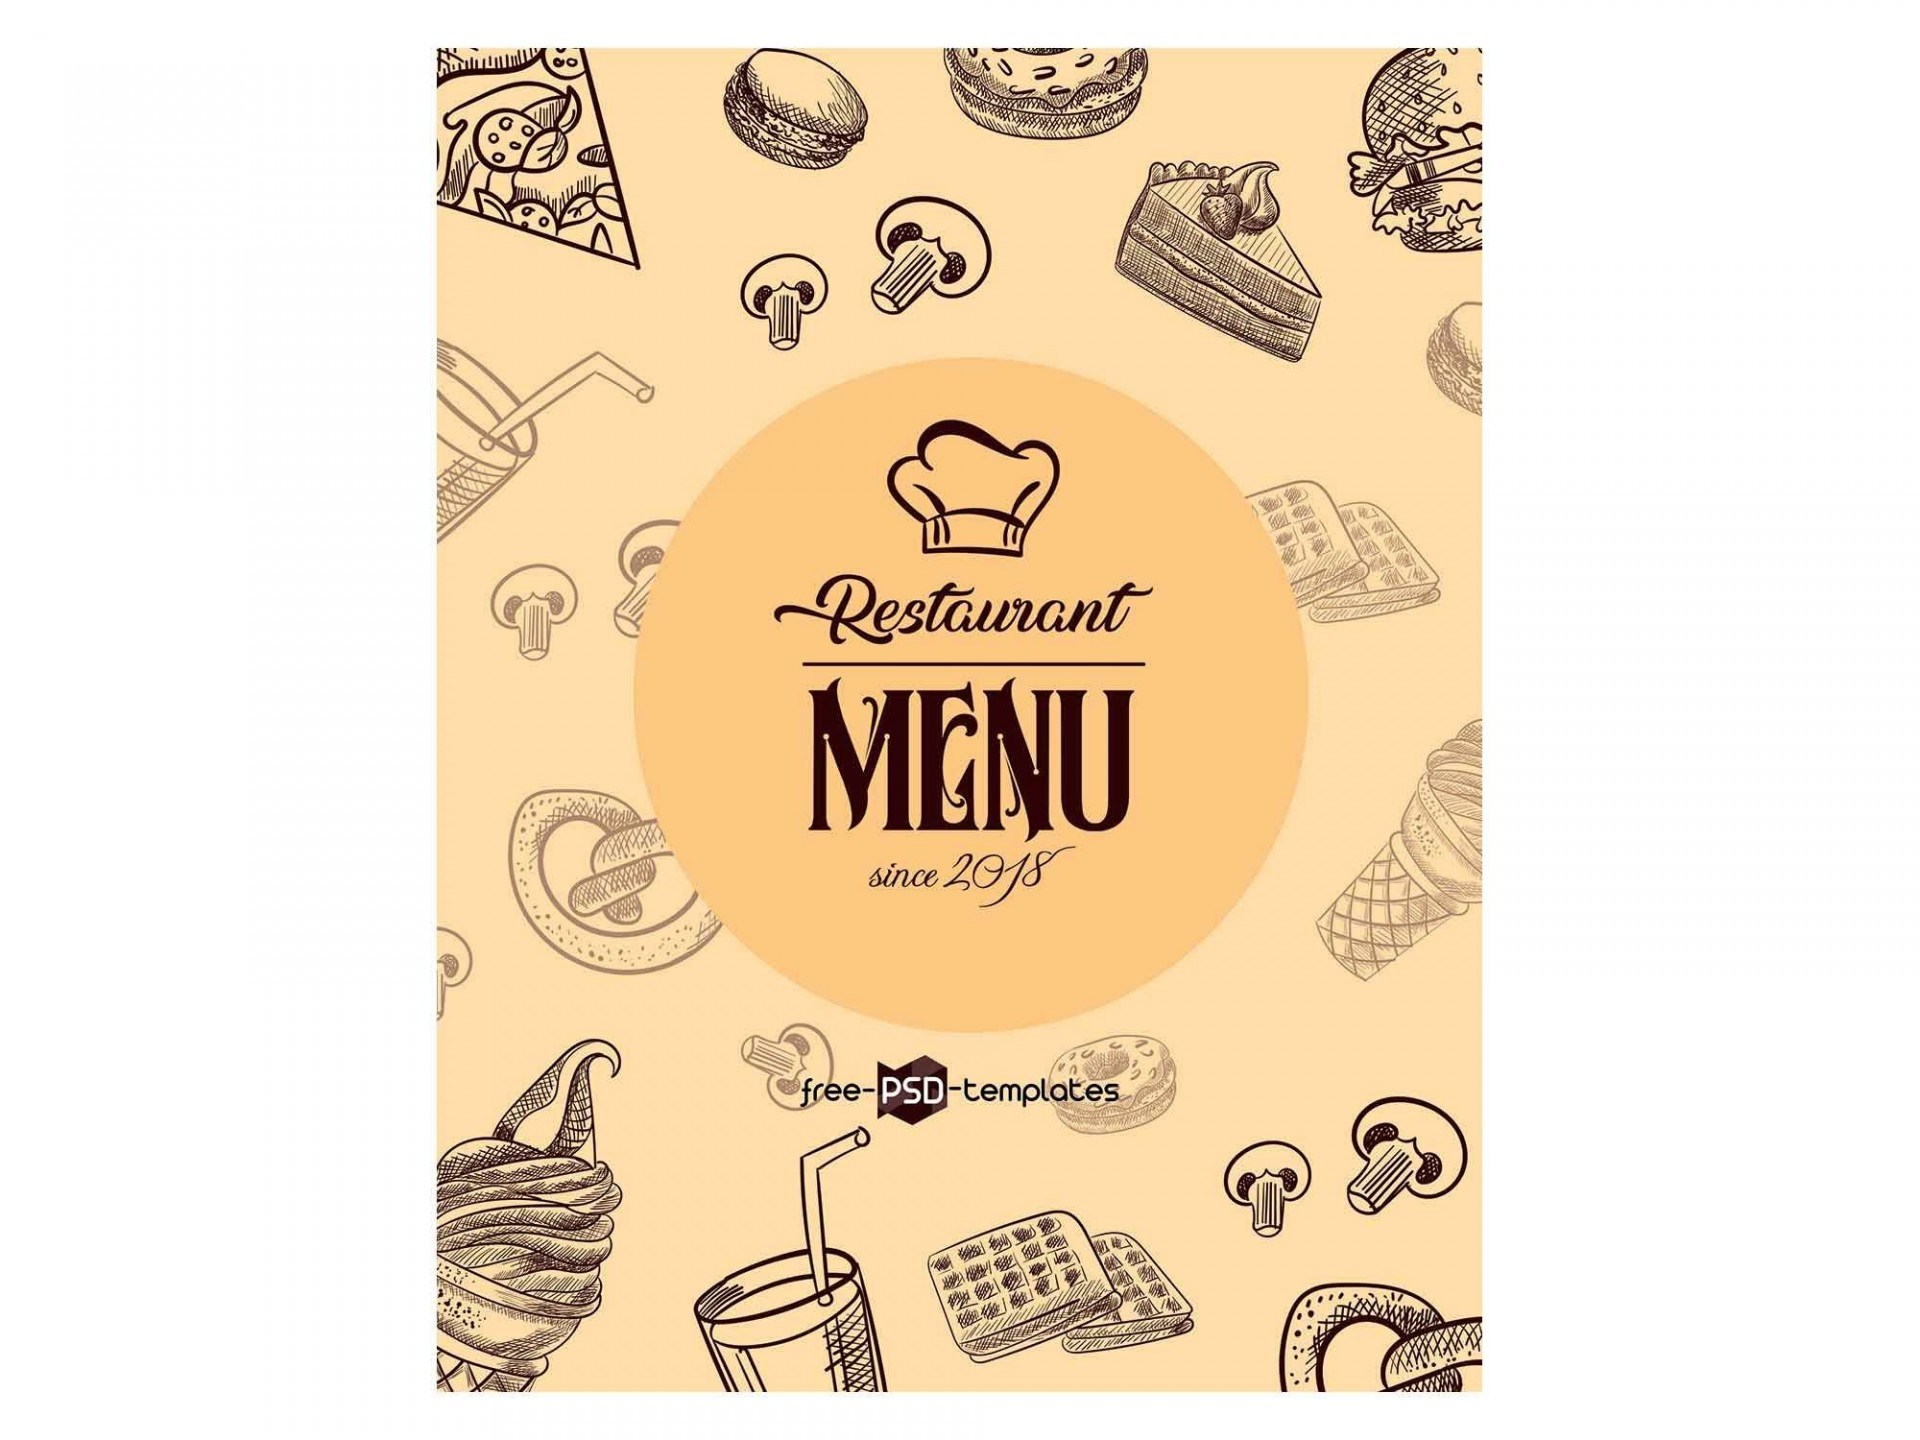 007 Awesome Restaurant Menu Template Free Download Inspiration 1920